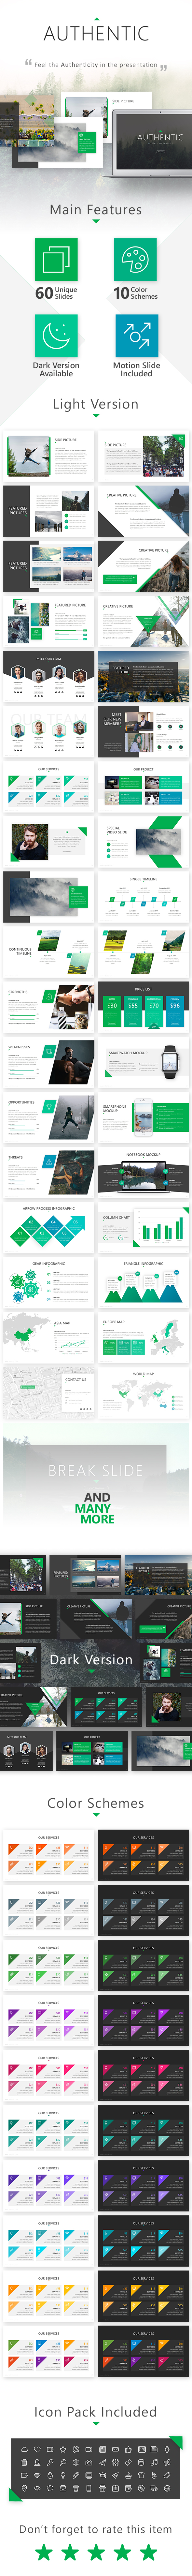 Authentic Presentation Template - Business PowerPoint Templates